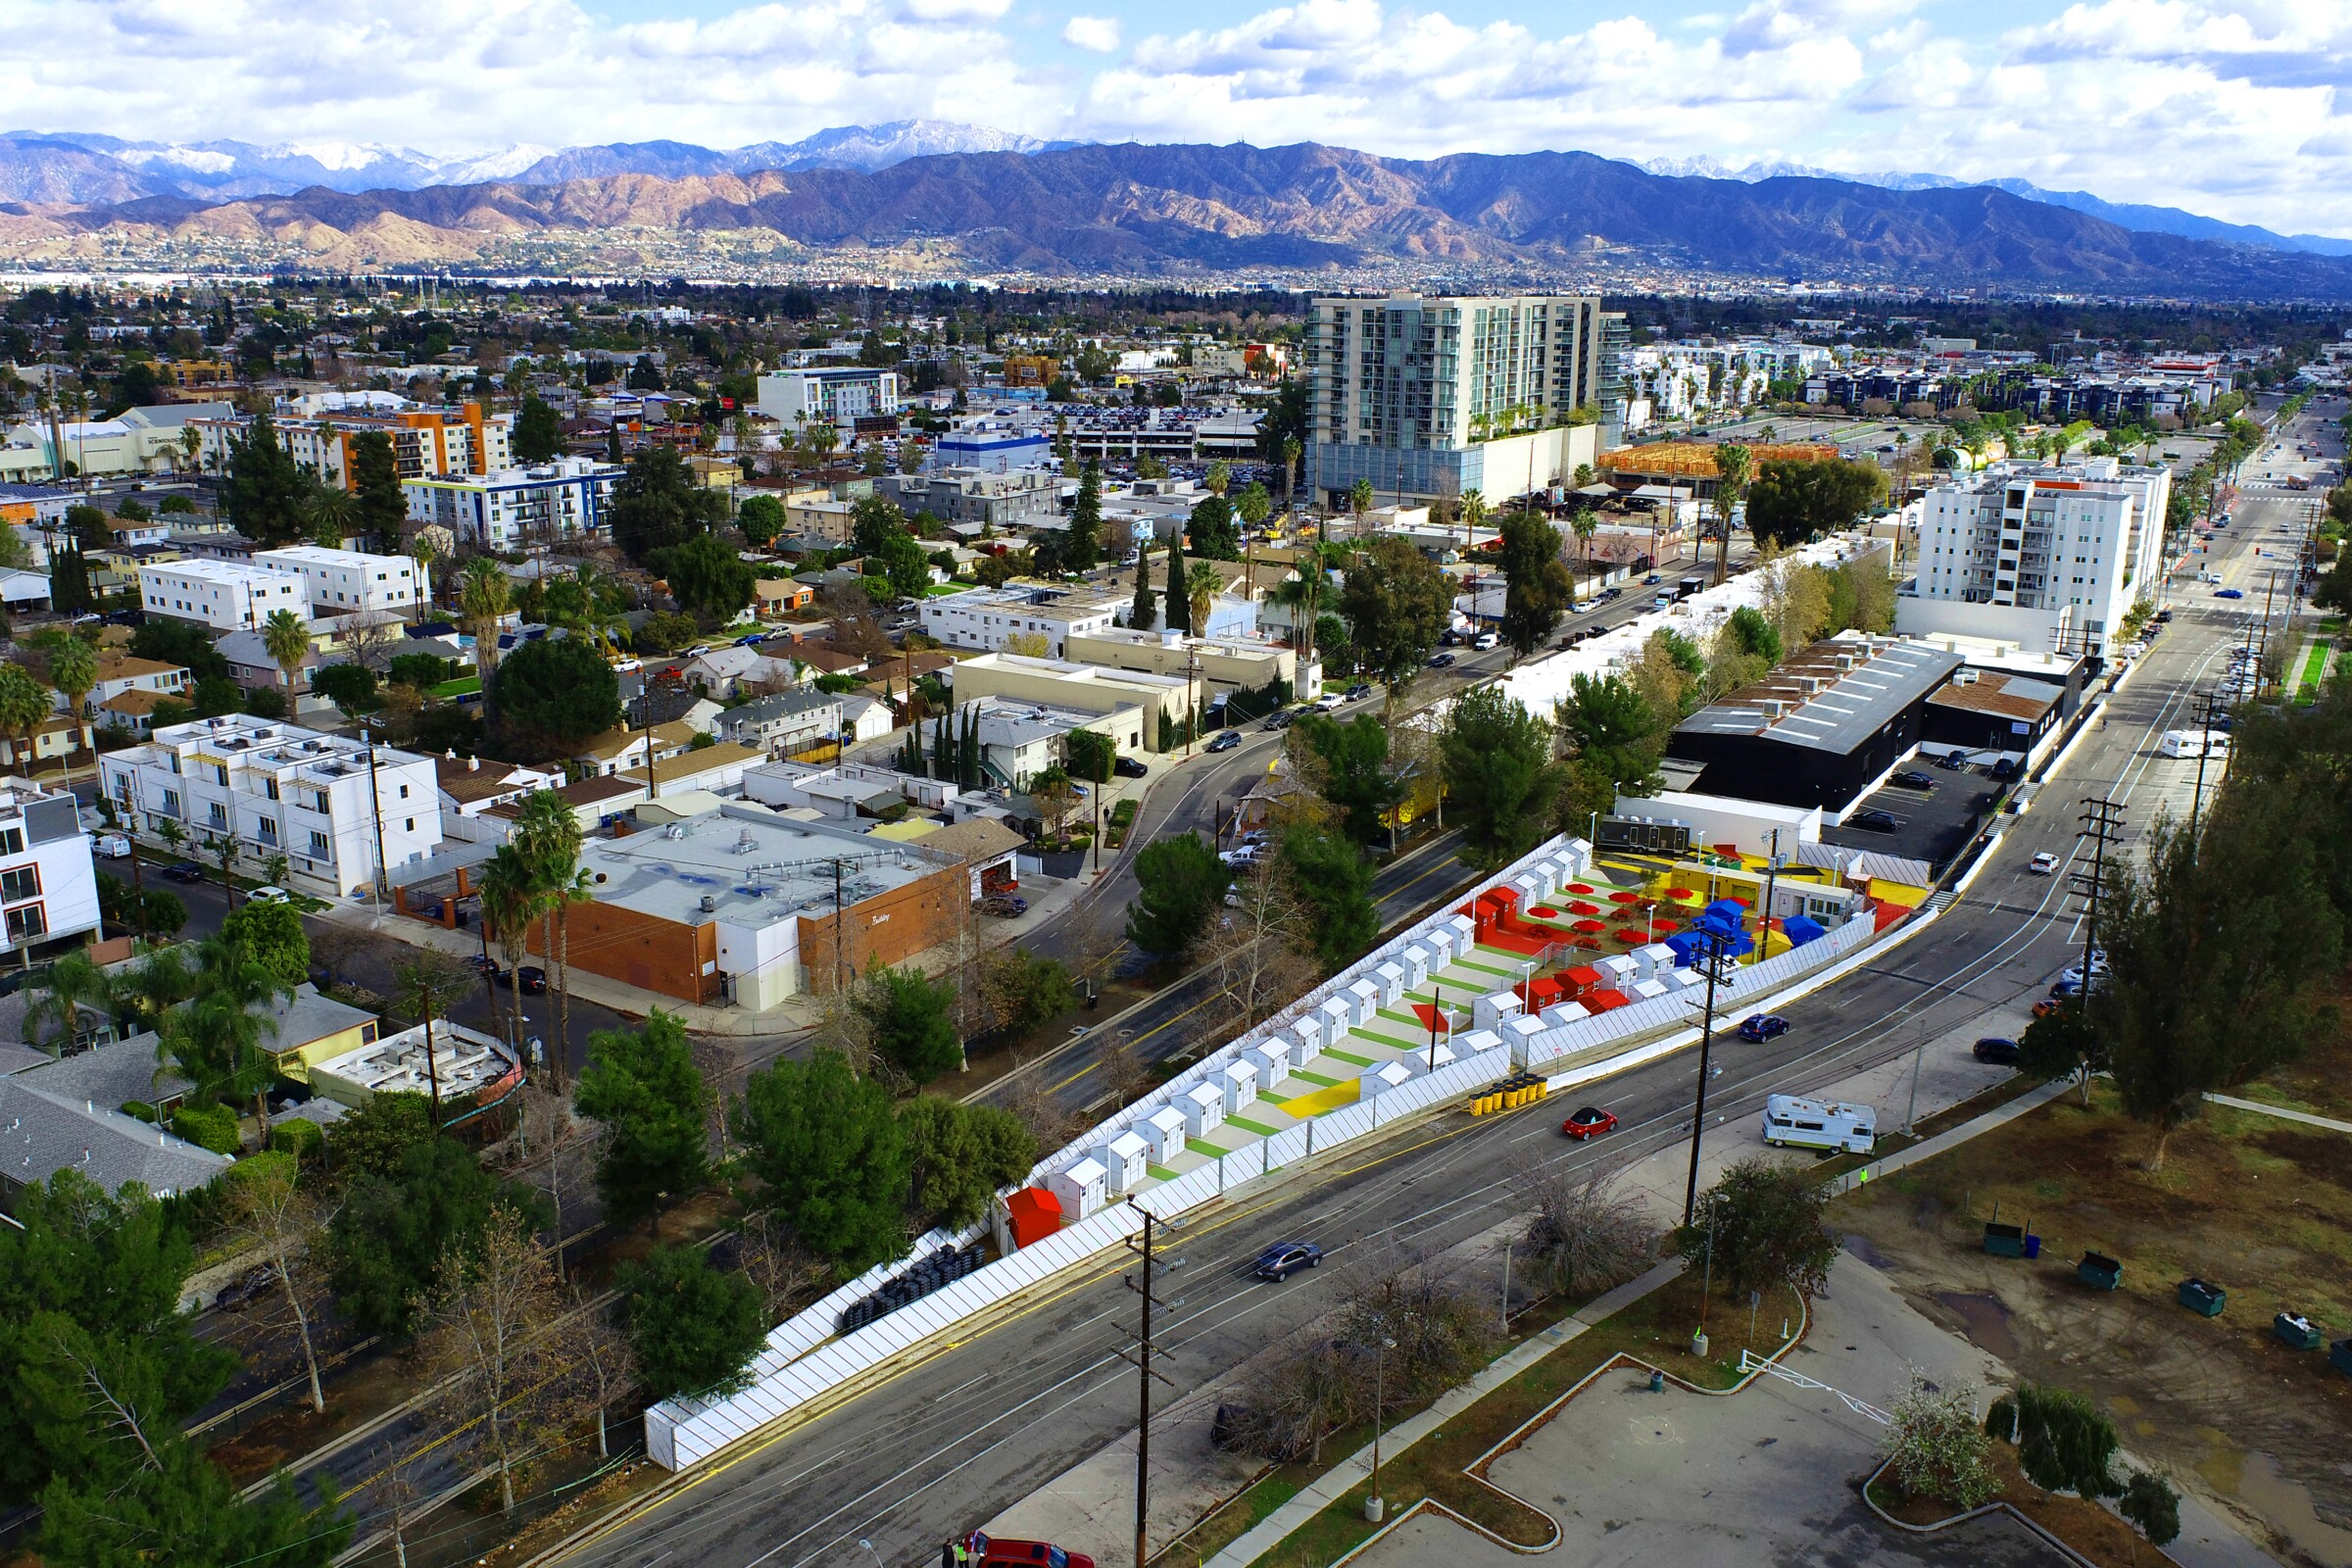 An aerial view shows tiny homes in shades of white, red, blue and yellow tucked into a narrow triangle of land